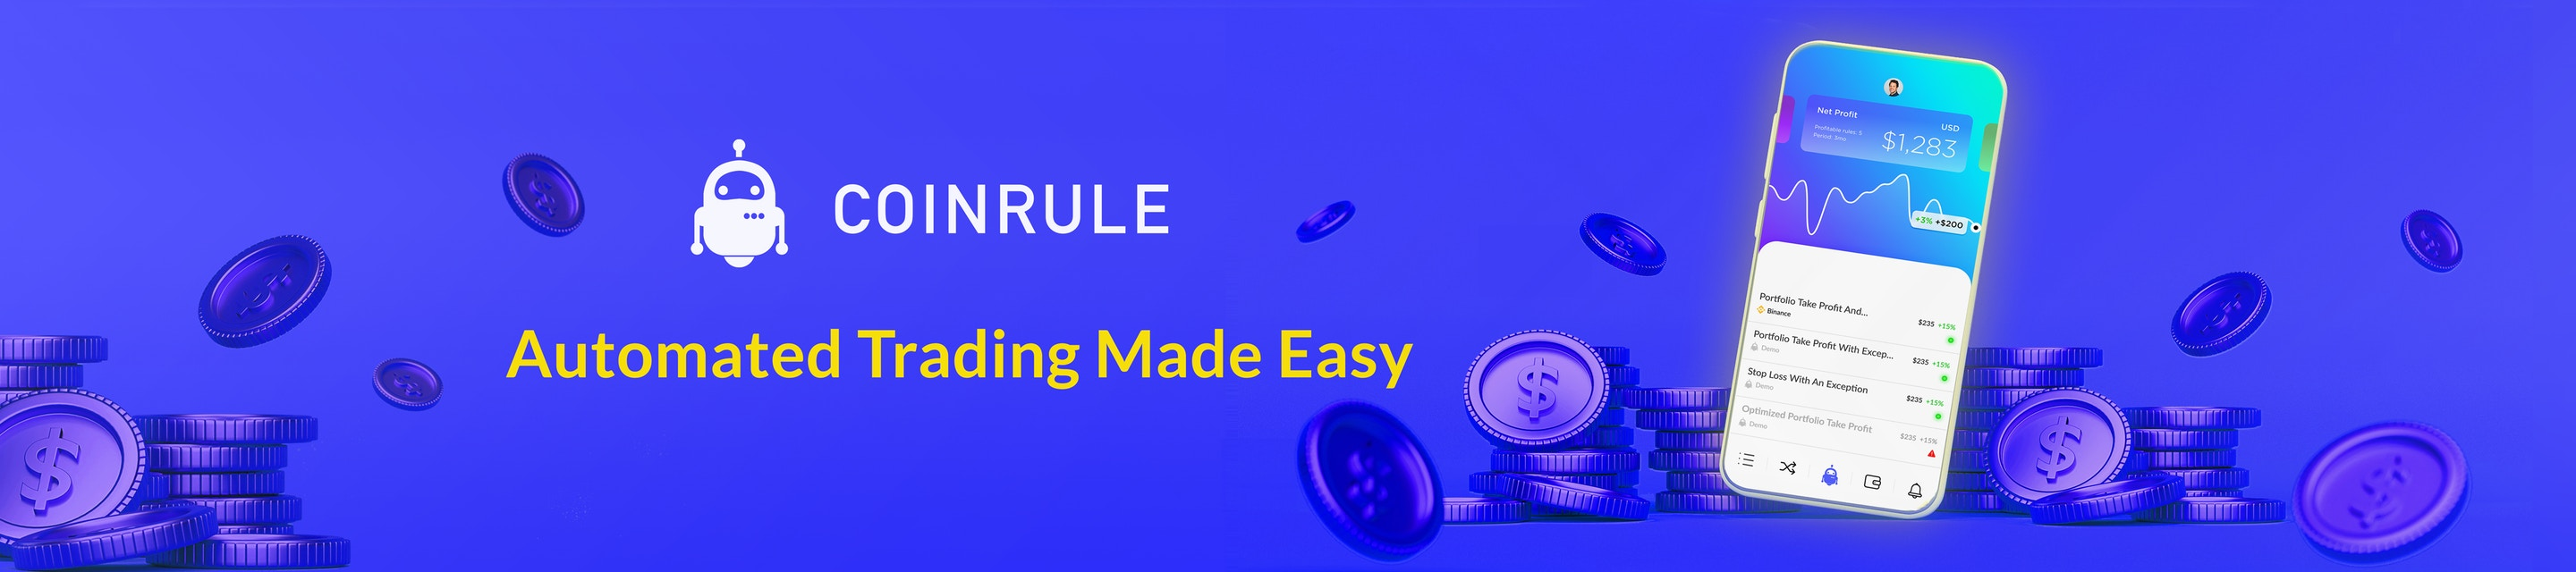 Coinrule hero image